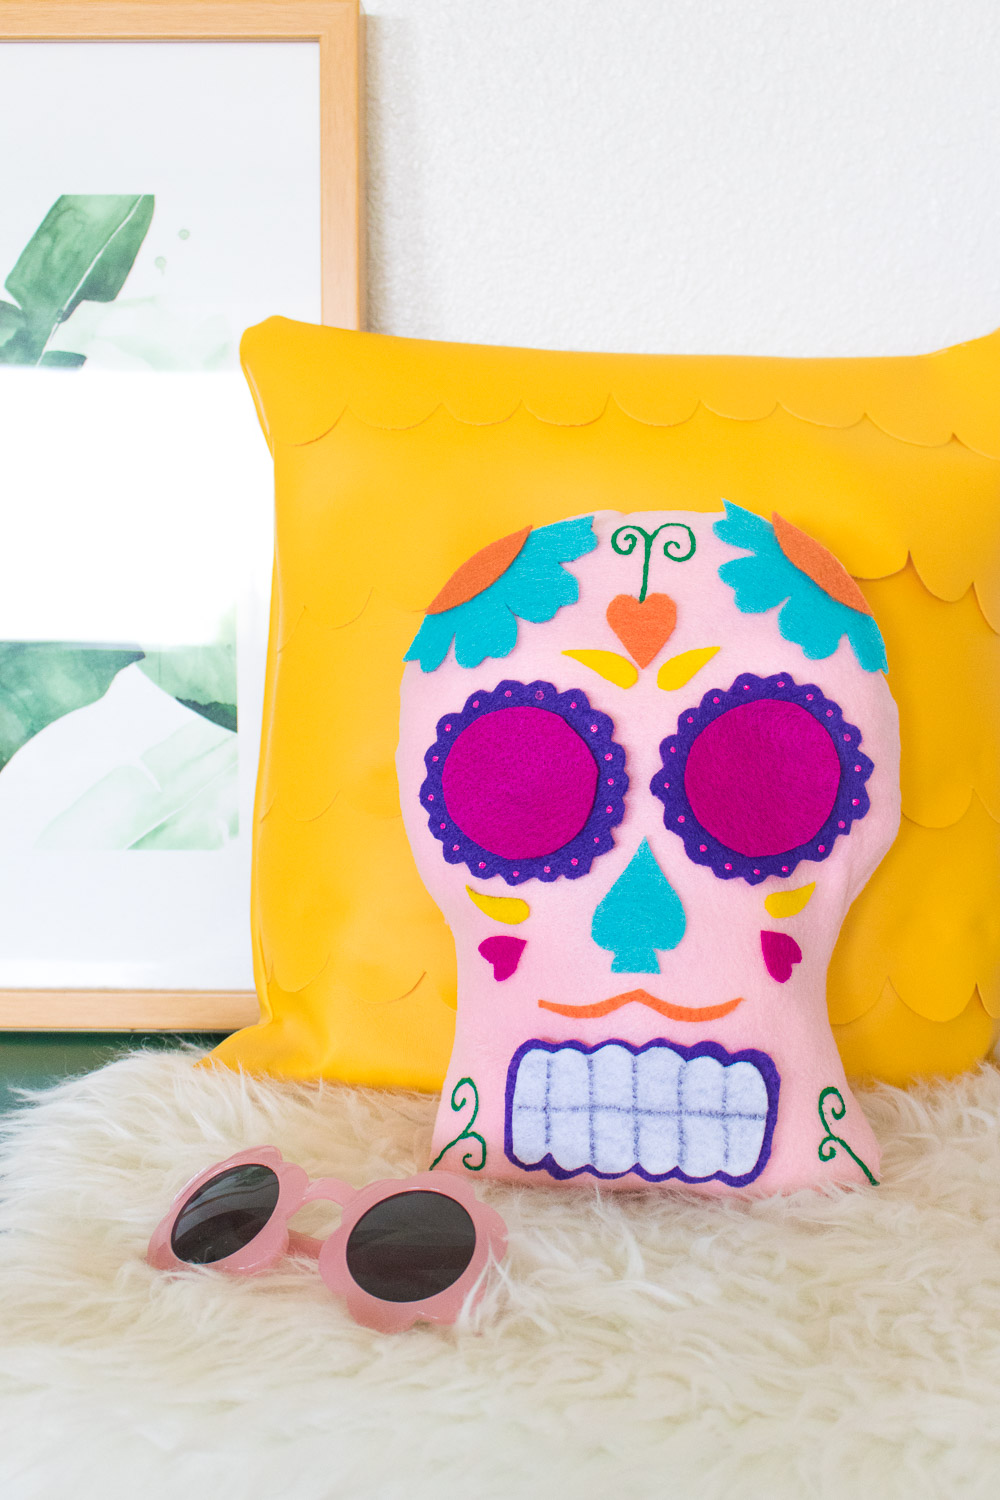 DIY Dia de los Muertos Sugar Skull Pillow | Club Crafted